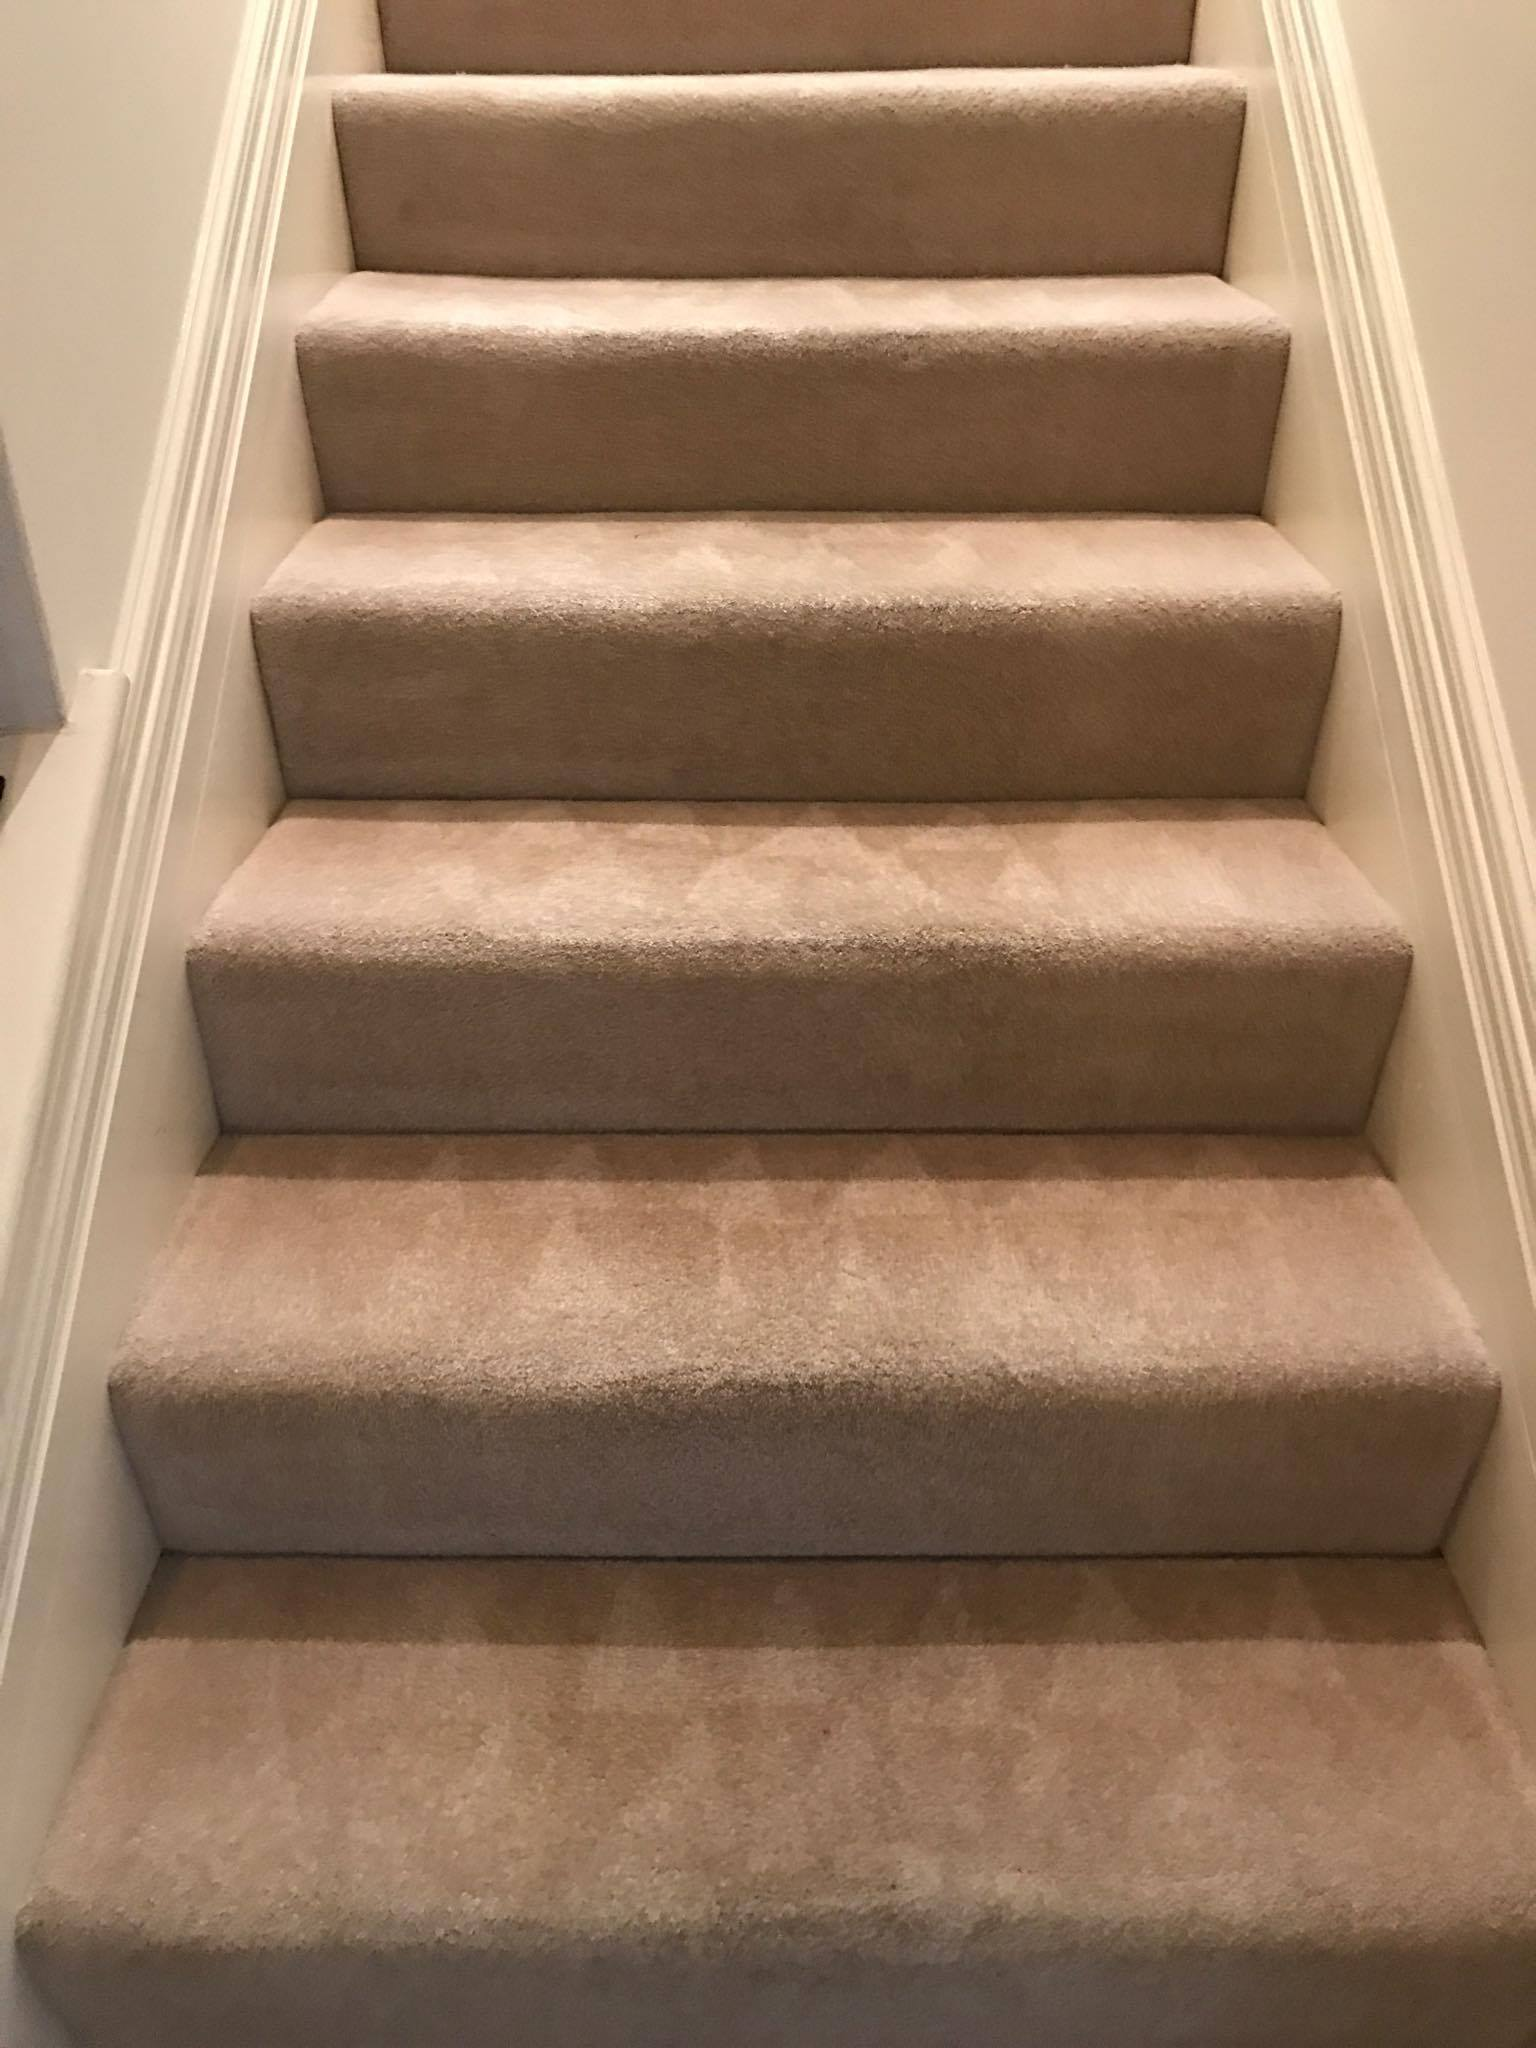 View of stairway carpet after  cleaning